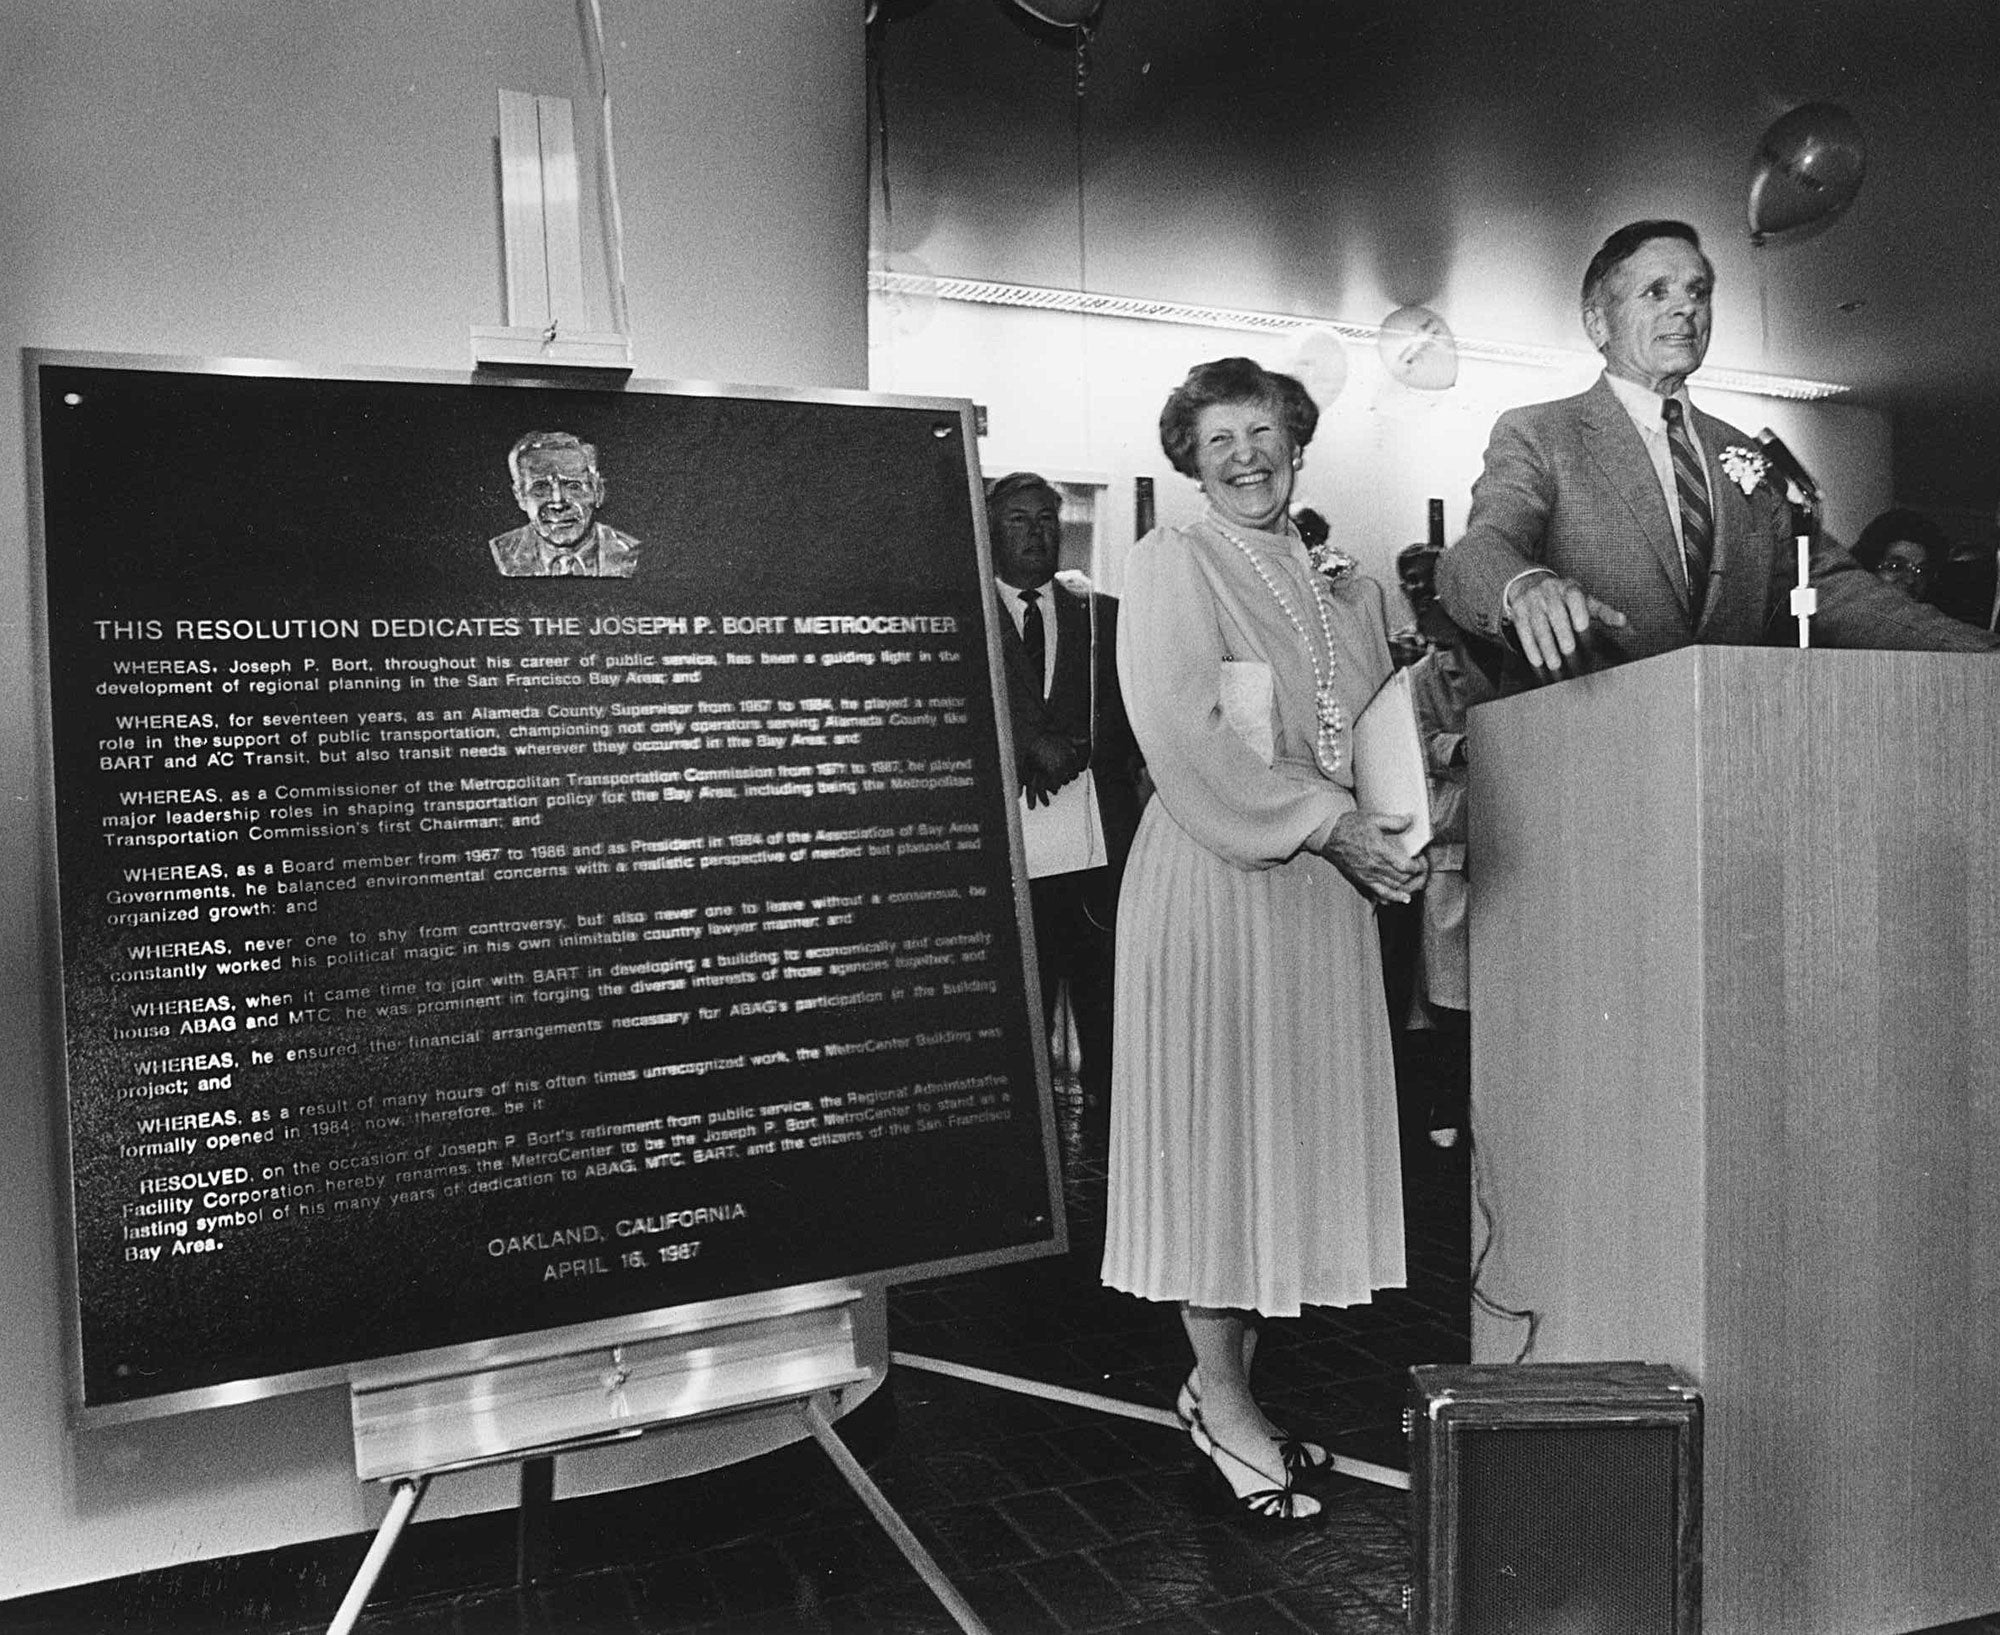 With his wife Jackie at his side, Joseph P. Bort speaks to the crowd at the April 1987 unveiling of the plaque dedicating the MetroCenter in his name.